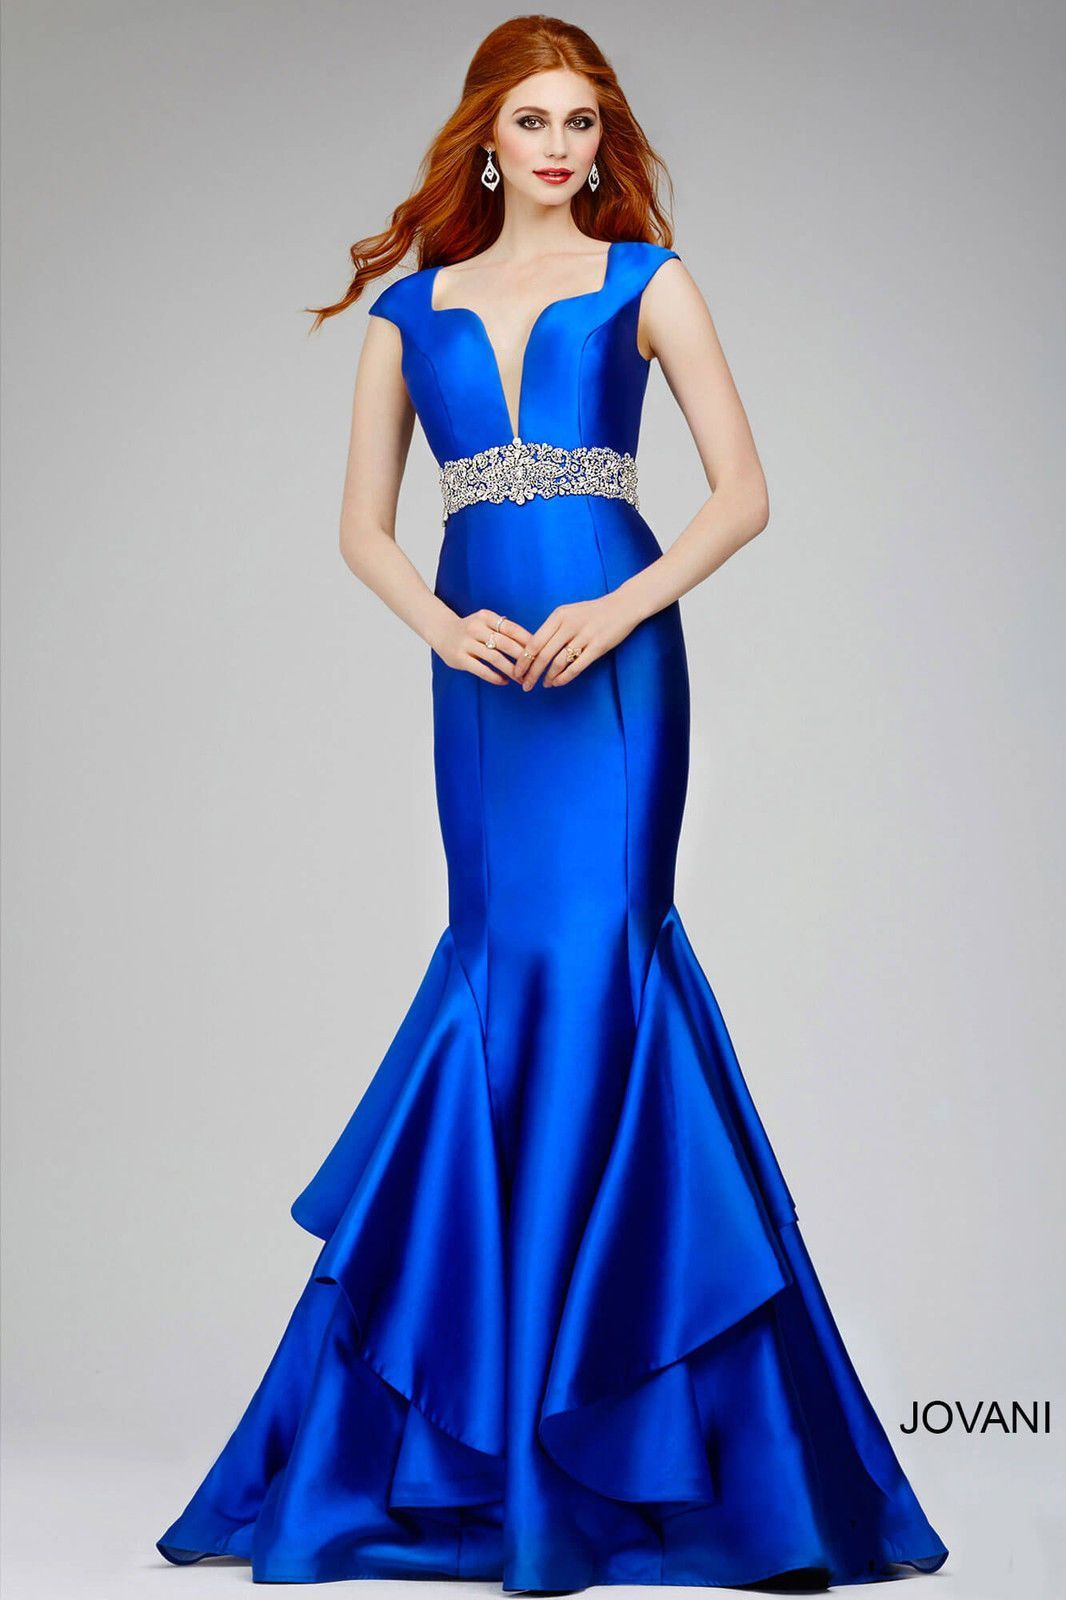 Jovani evening dress lowest price guaranteed new authentic